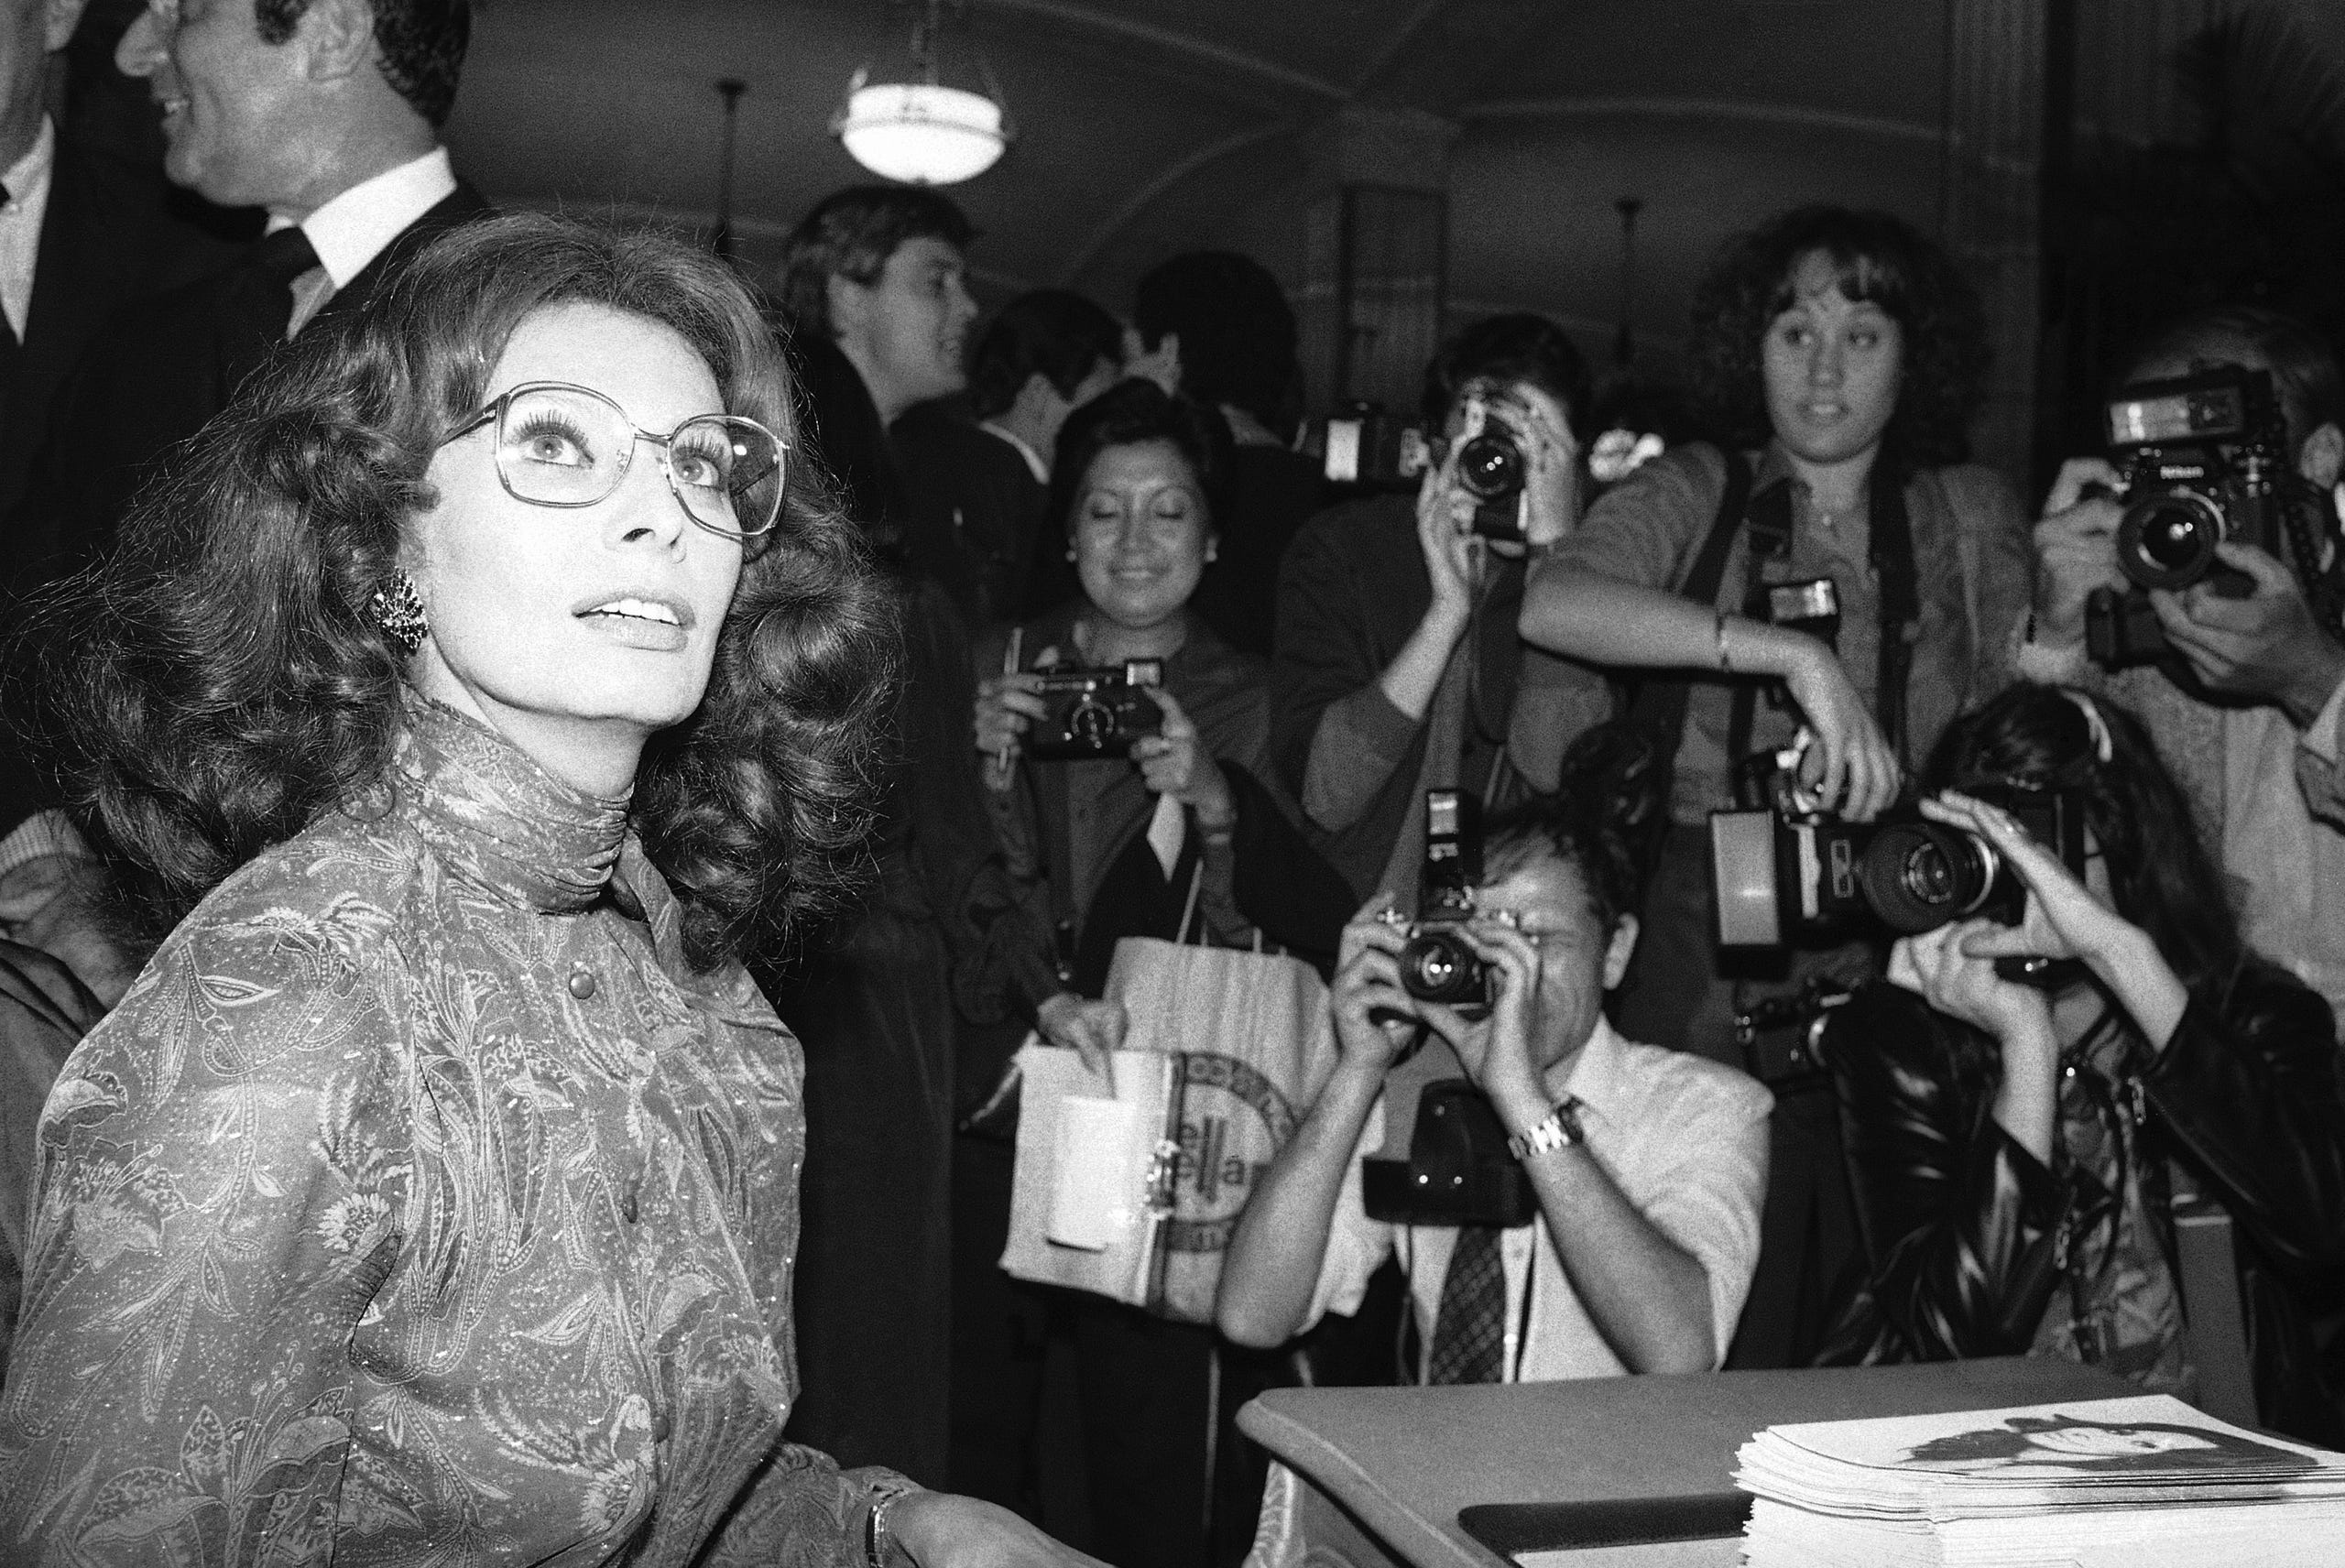 While promoting her autobiographical movie, Loren signed autographs on Sept. 25, 1980, at Lord & Taylor department store in New York.